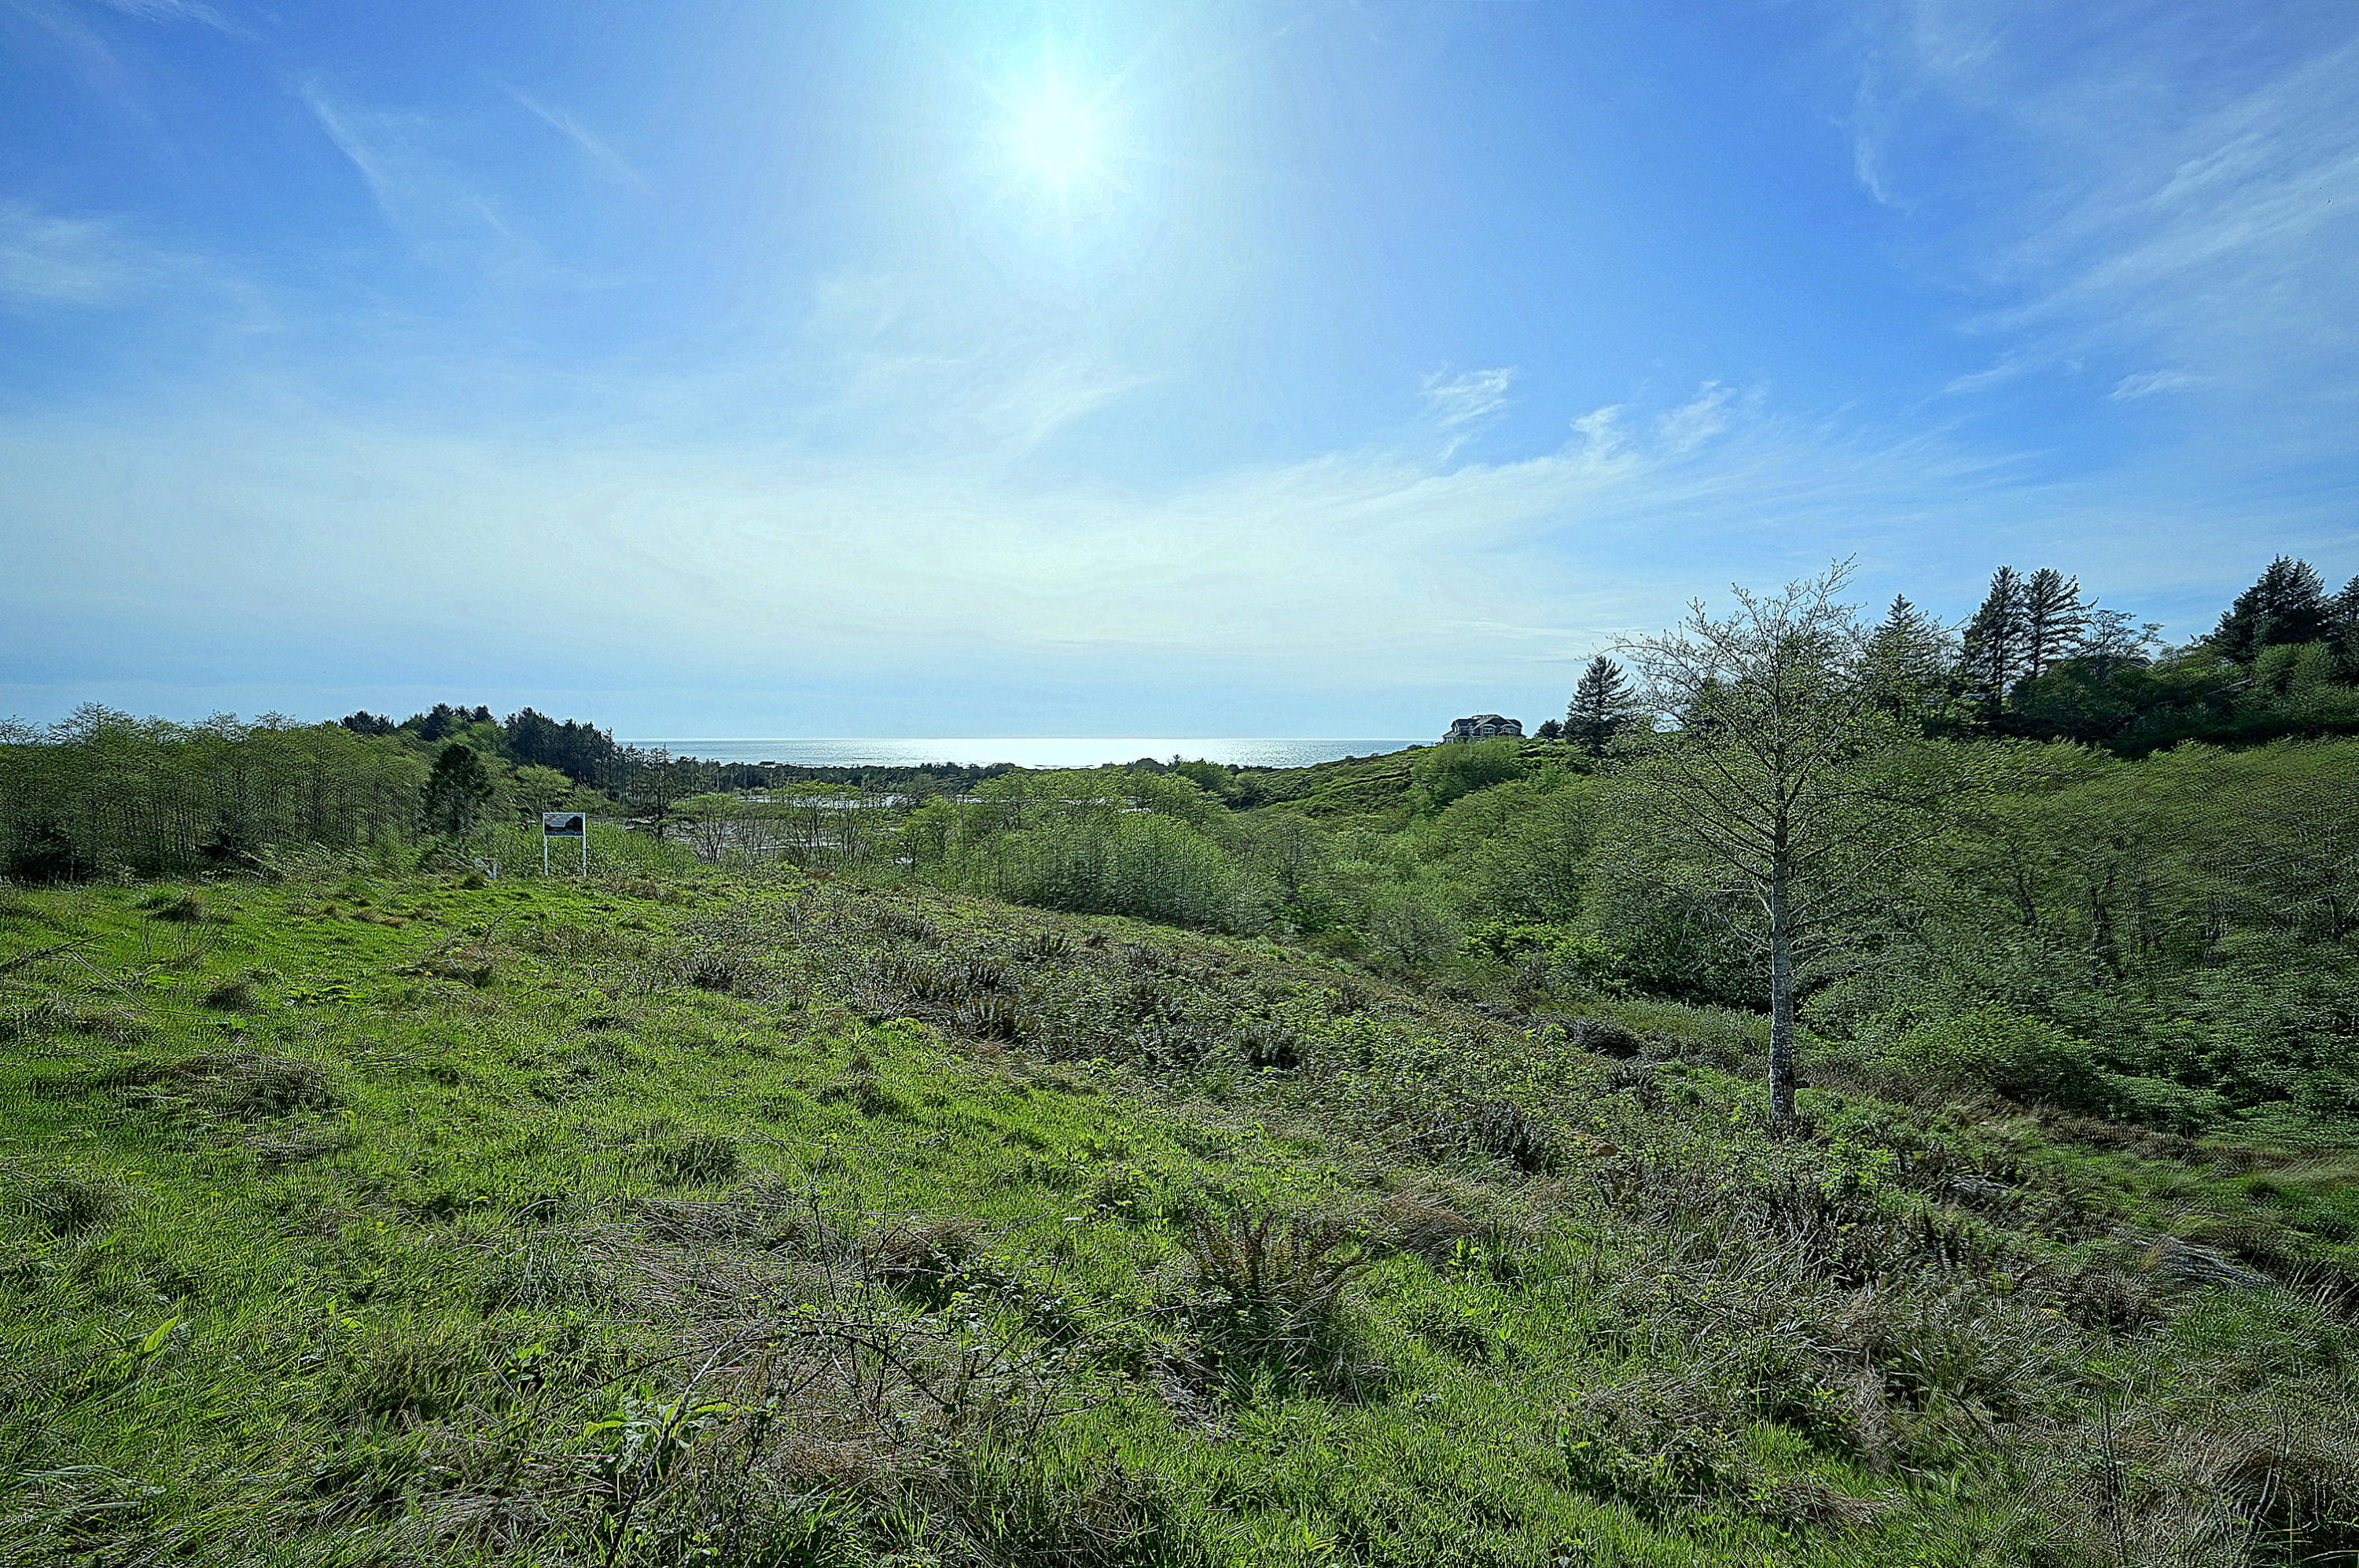 LOT 56 Pelican Point Dr, Neskowin, OR 97149 - Pelican Point T/L 5600